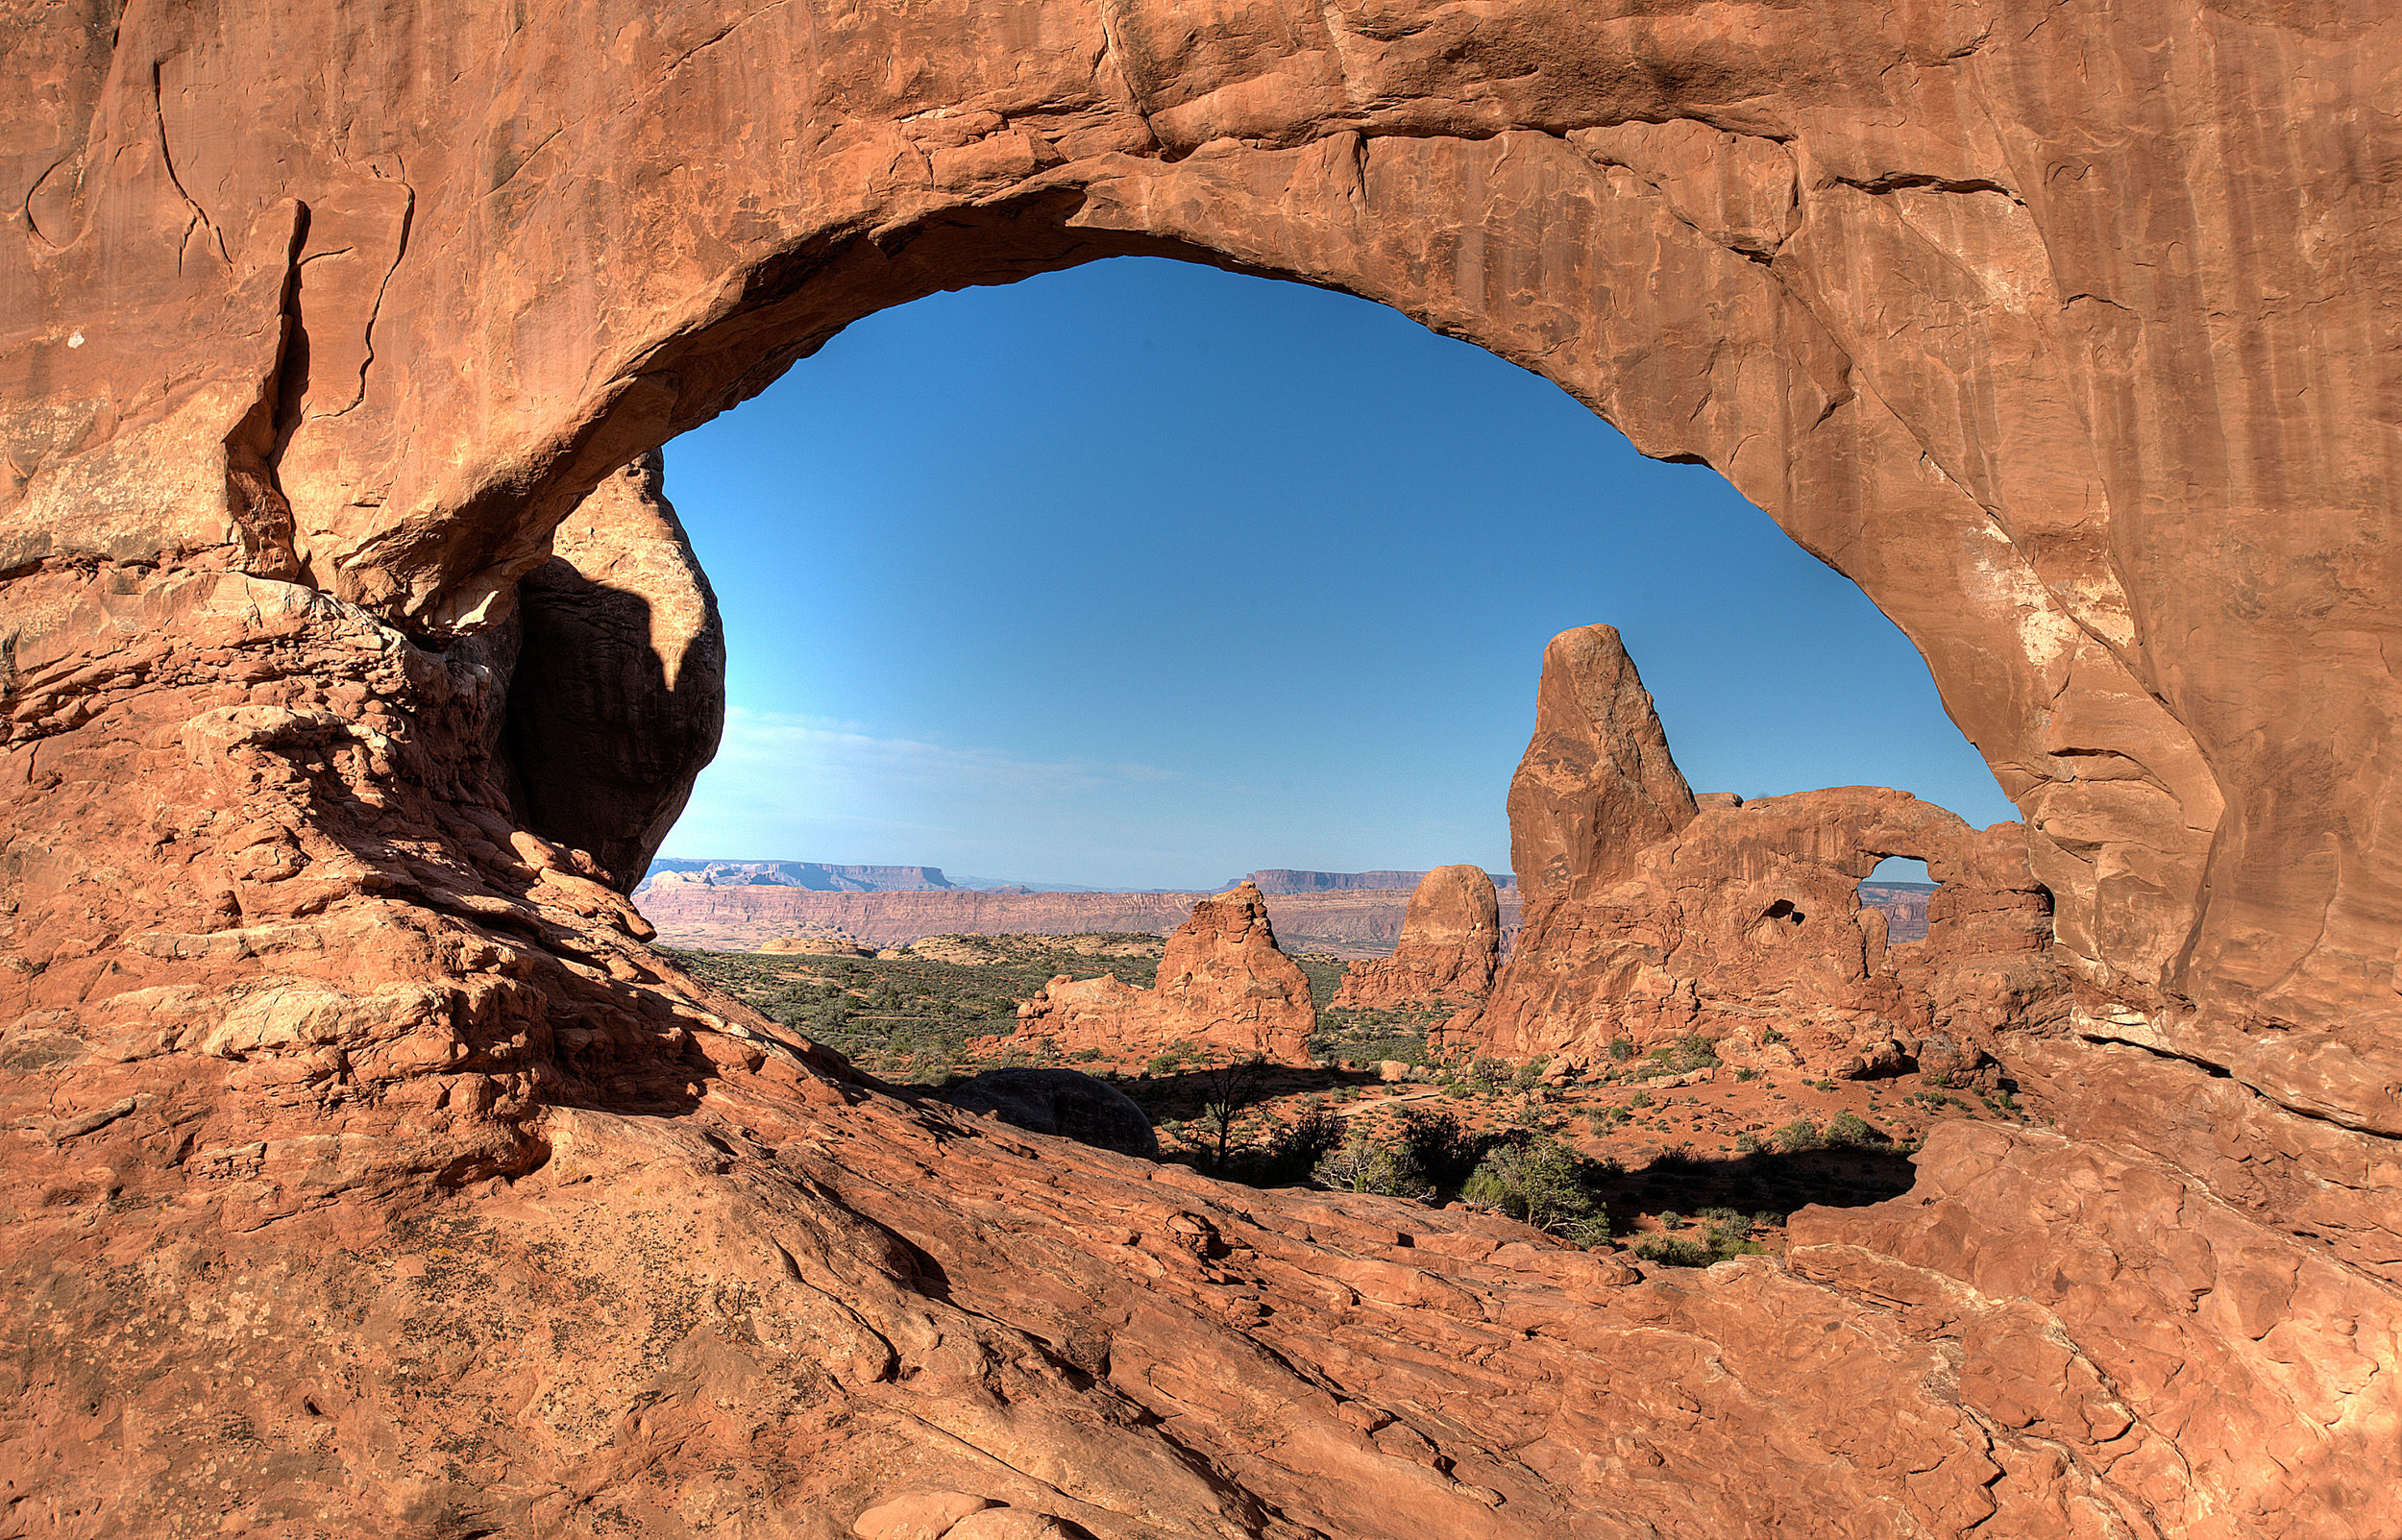 090610_0551_48_50-North-and-South-Window-Arch.jpg